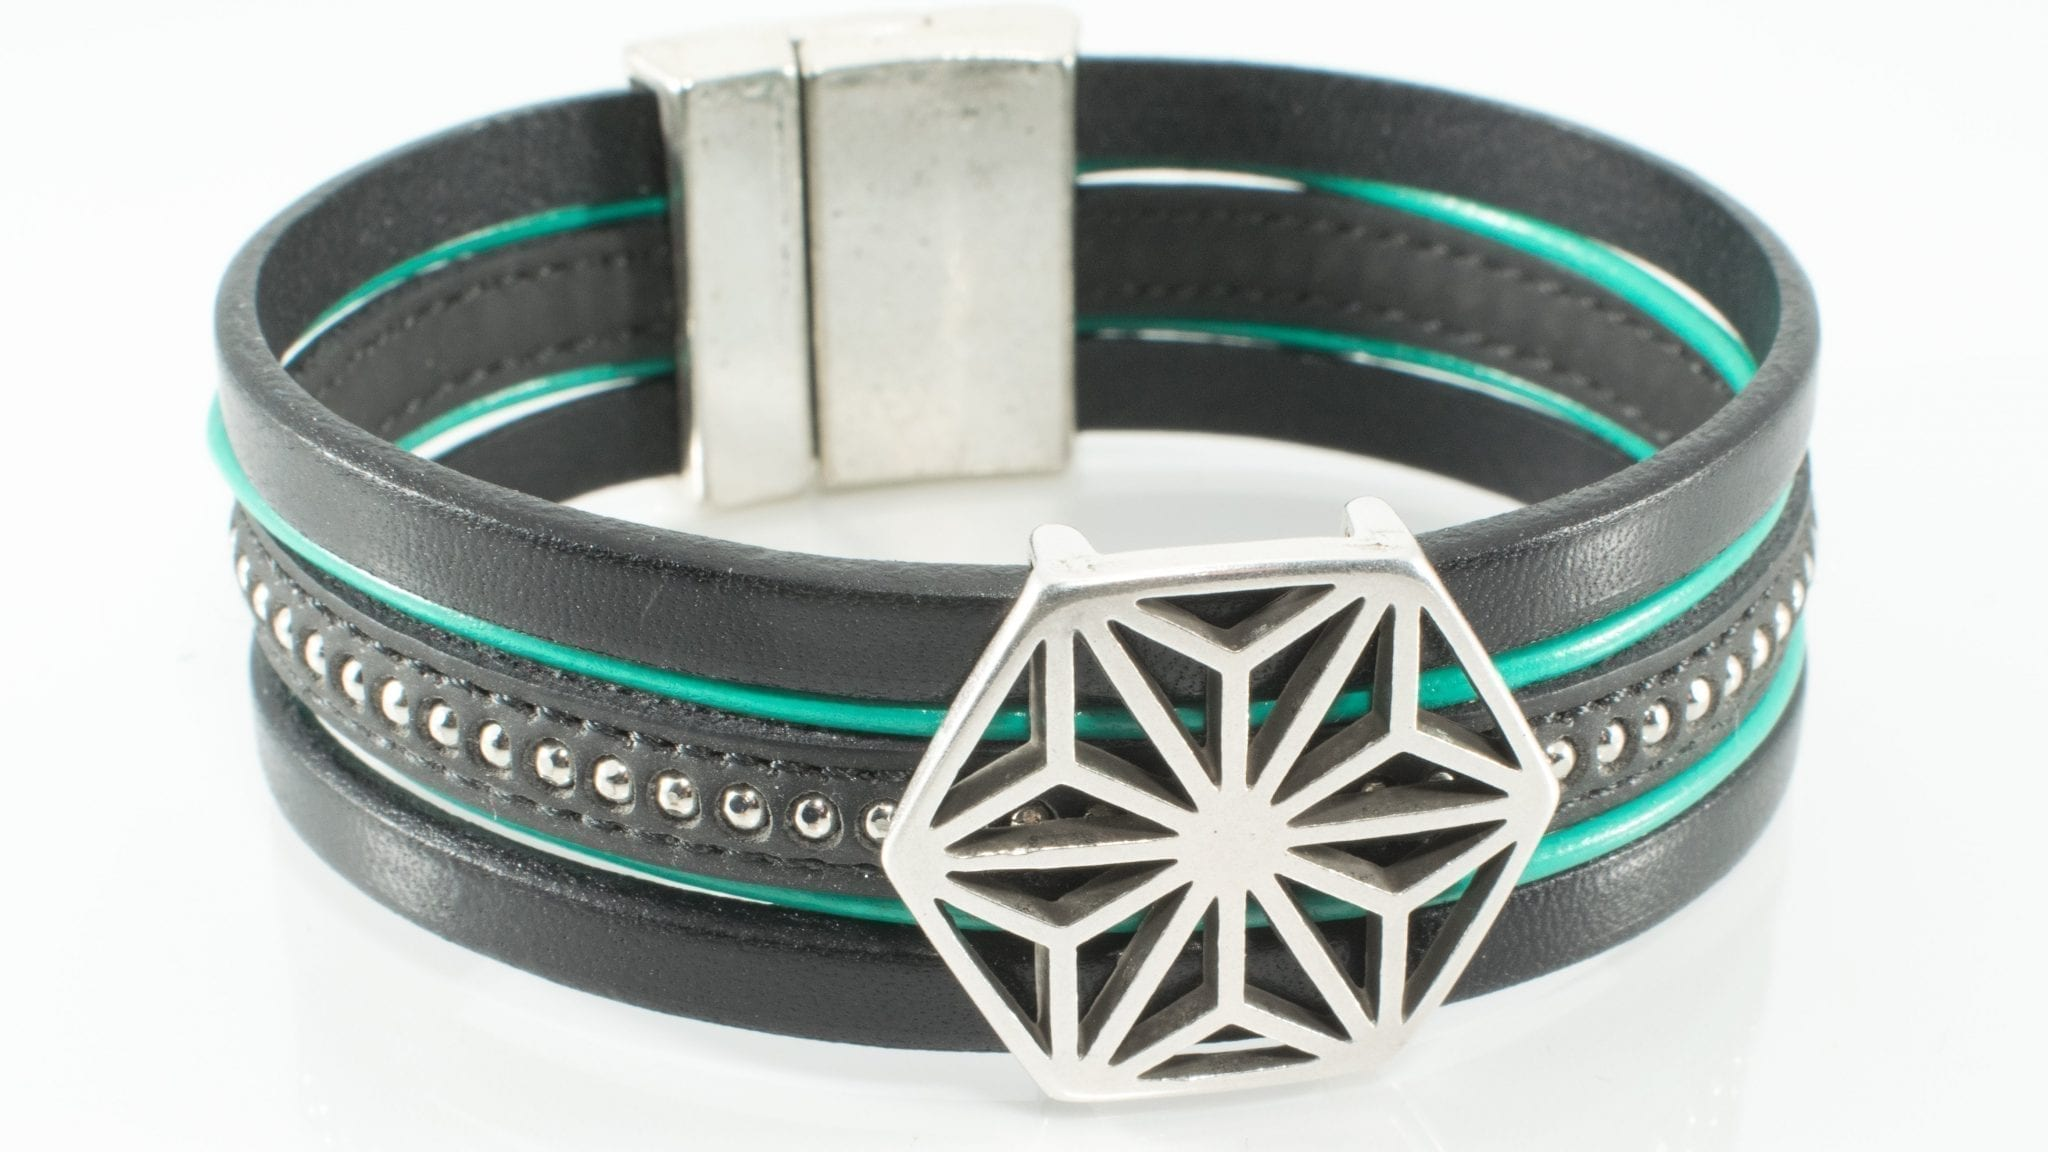 Black and Turquoise Leather Cuff Bracelet